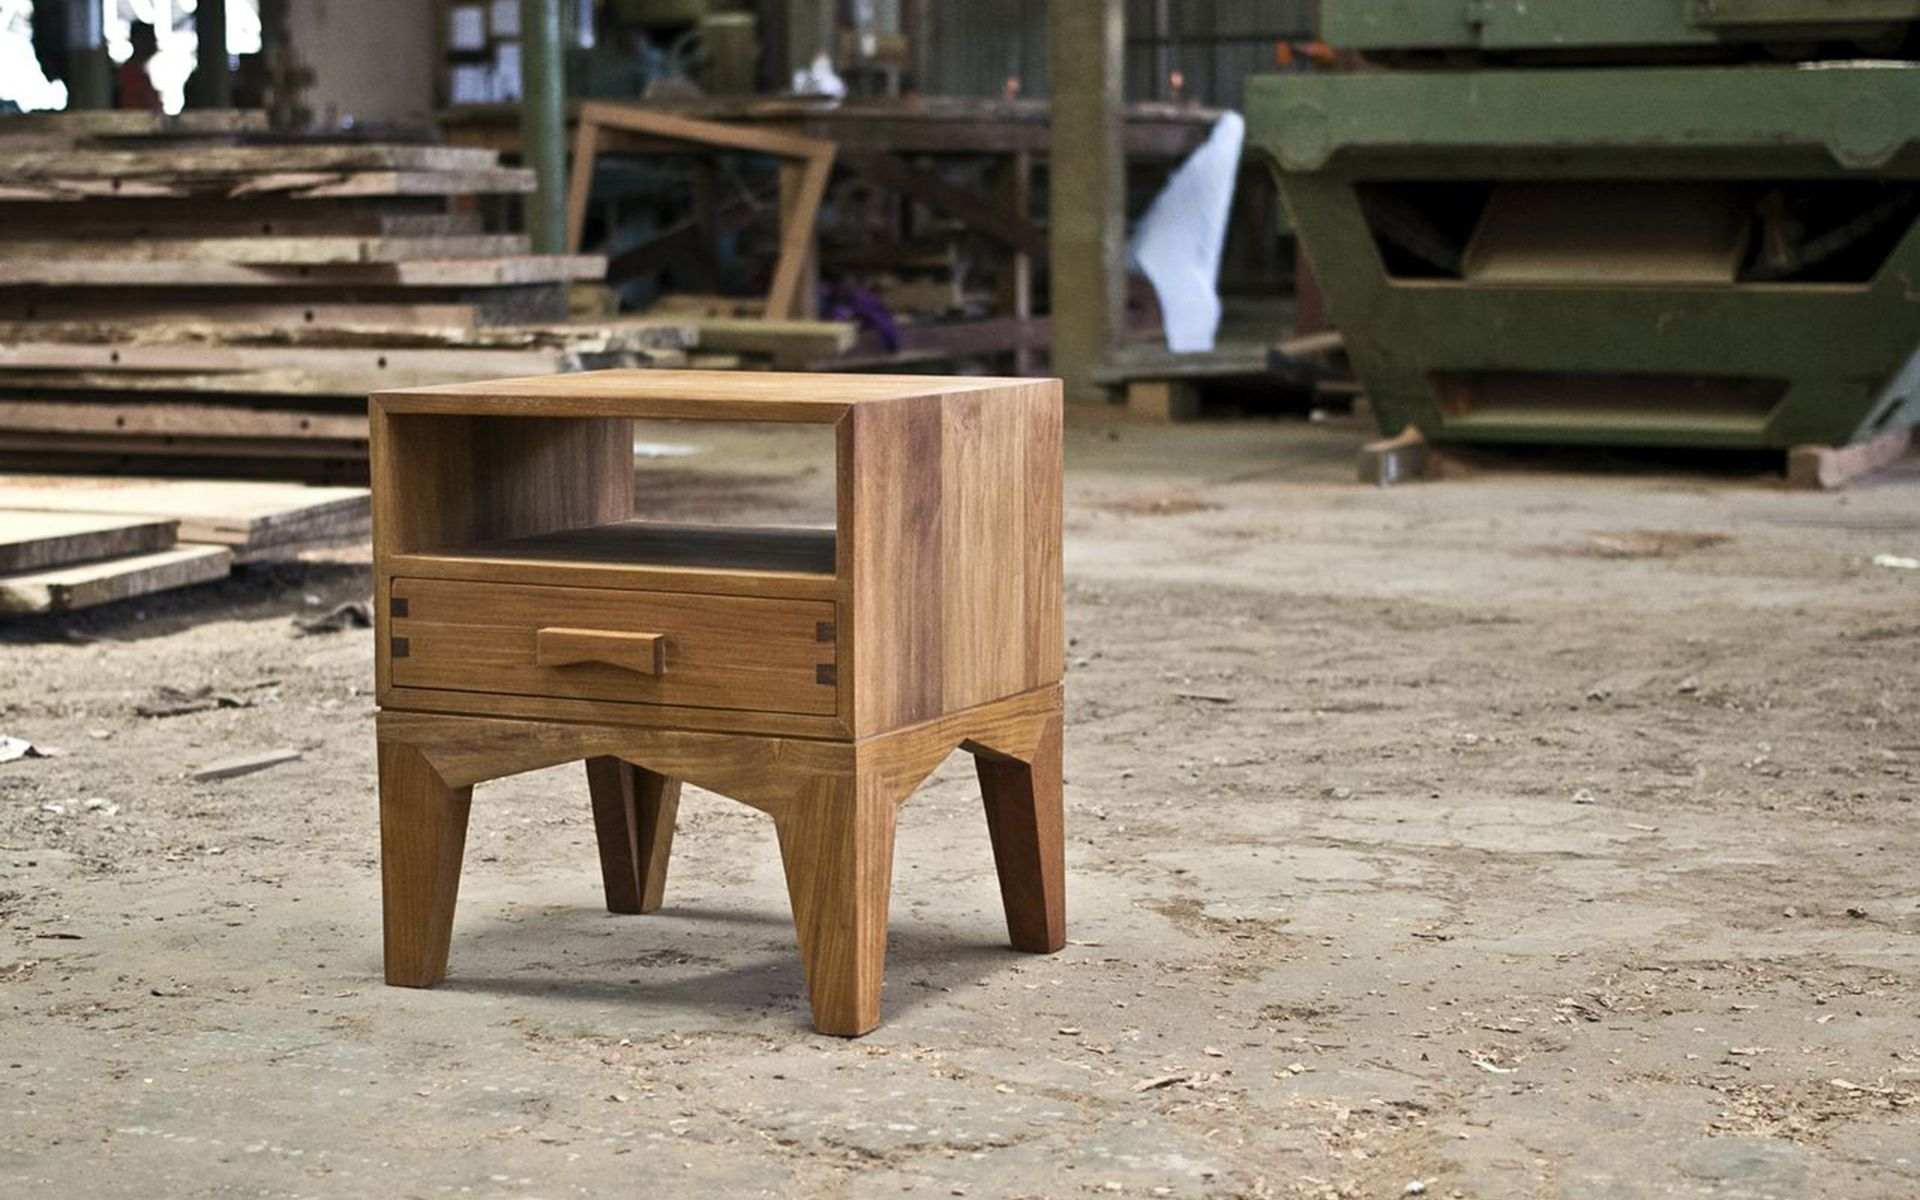 Aaron Poritz Furniture - Bed Side Table 1 featured on Rypen